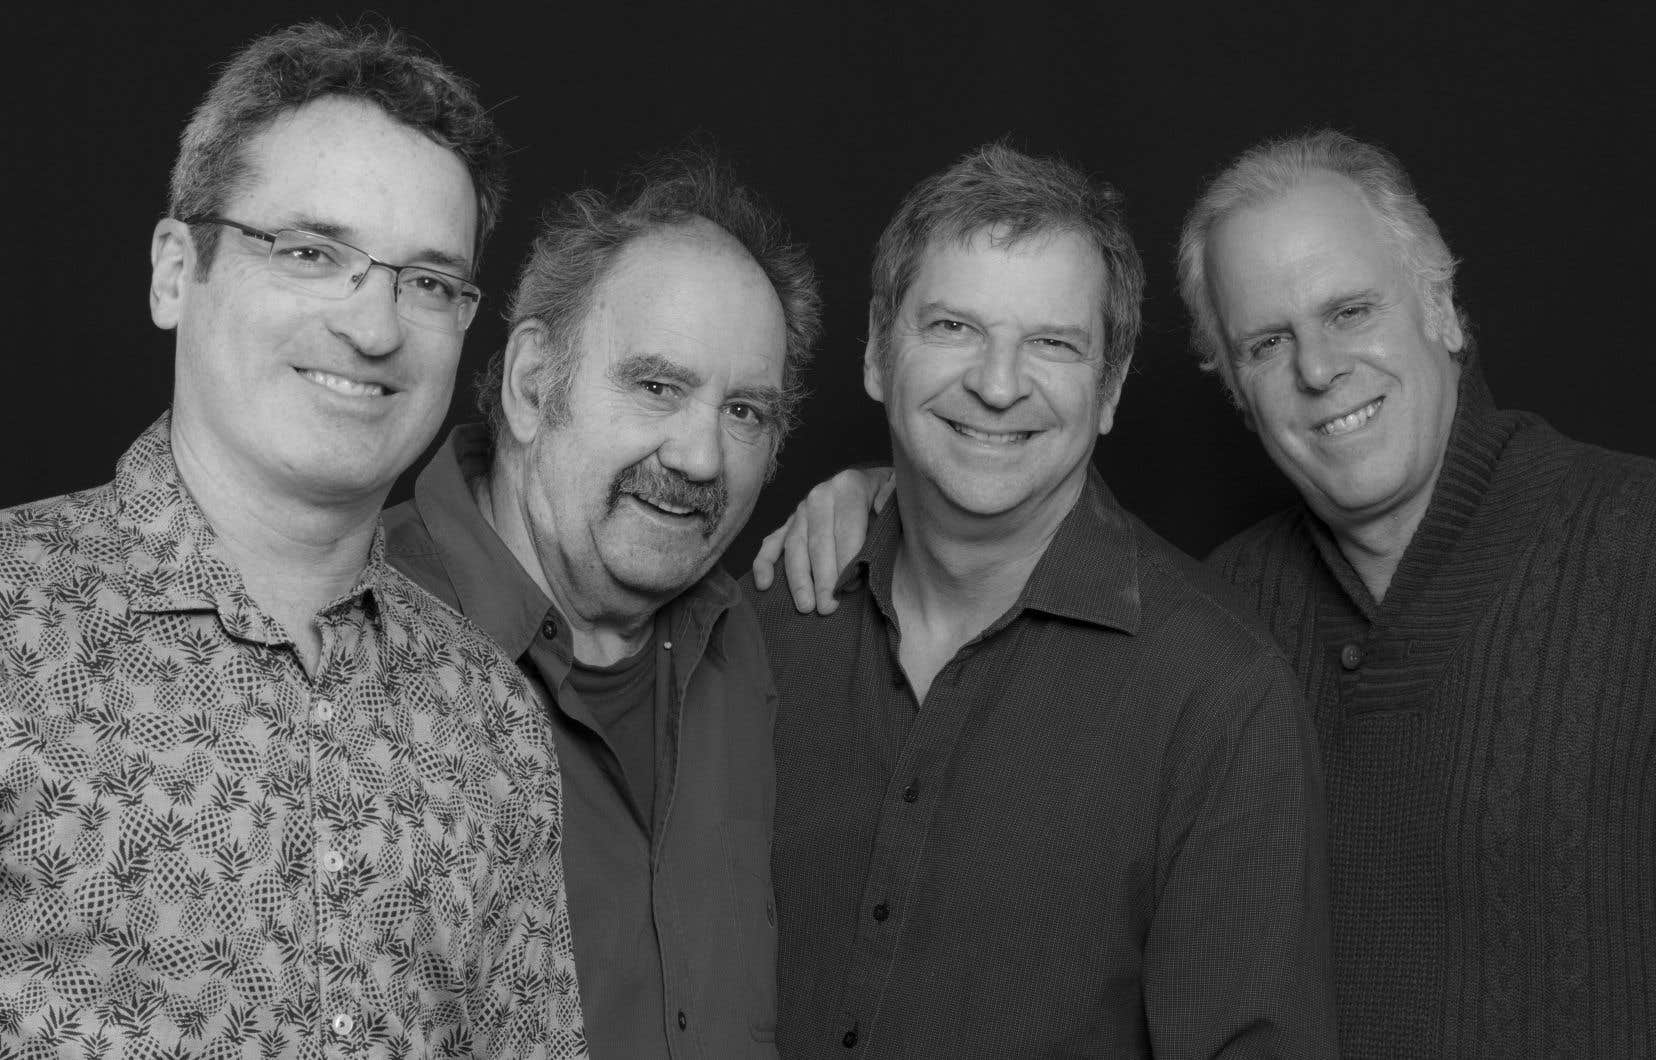 Le super-groupe formé de Frank Lozano, Michel Donato, François Bourassa et Pierre Tanguay lancera le 5 juillet au Upstairs l'album «Re: Bill Evans».